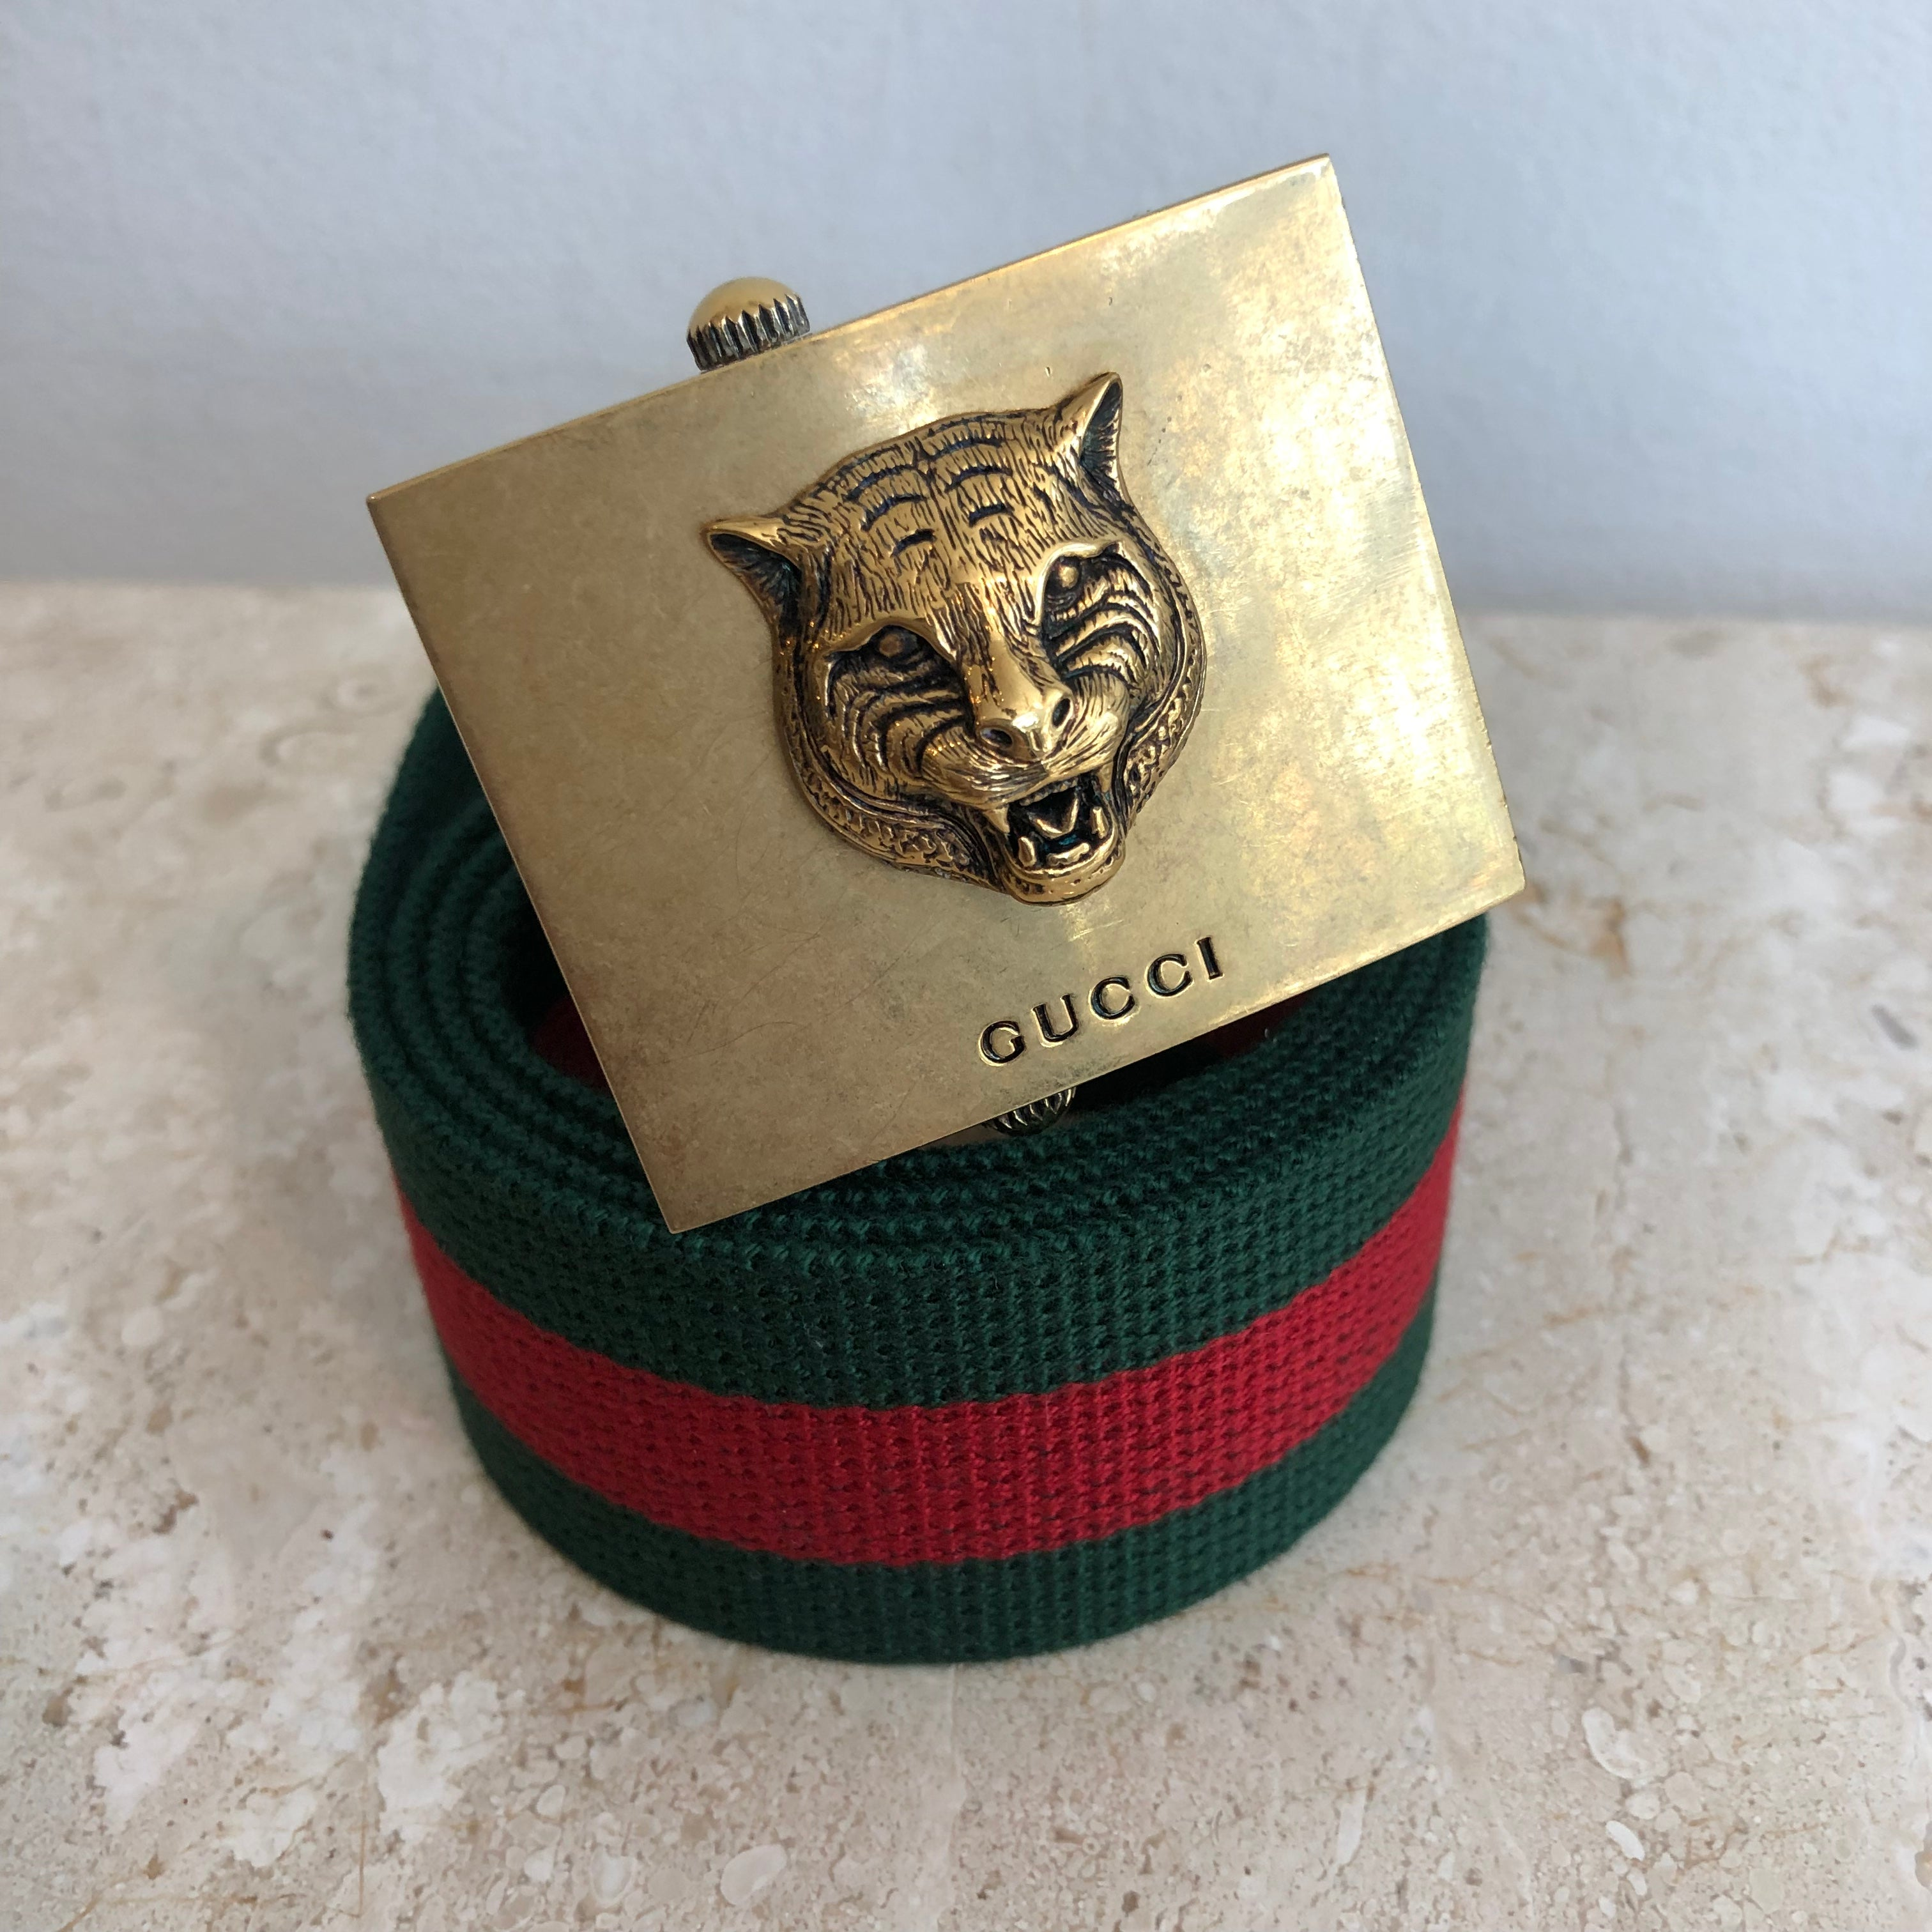 Authentic GUCCI Animalier buckle Web Stripe Belt Size 85/34